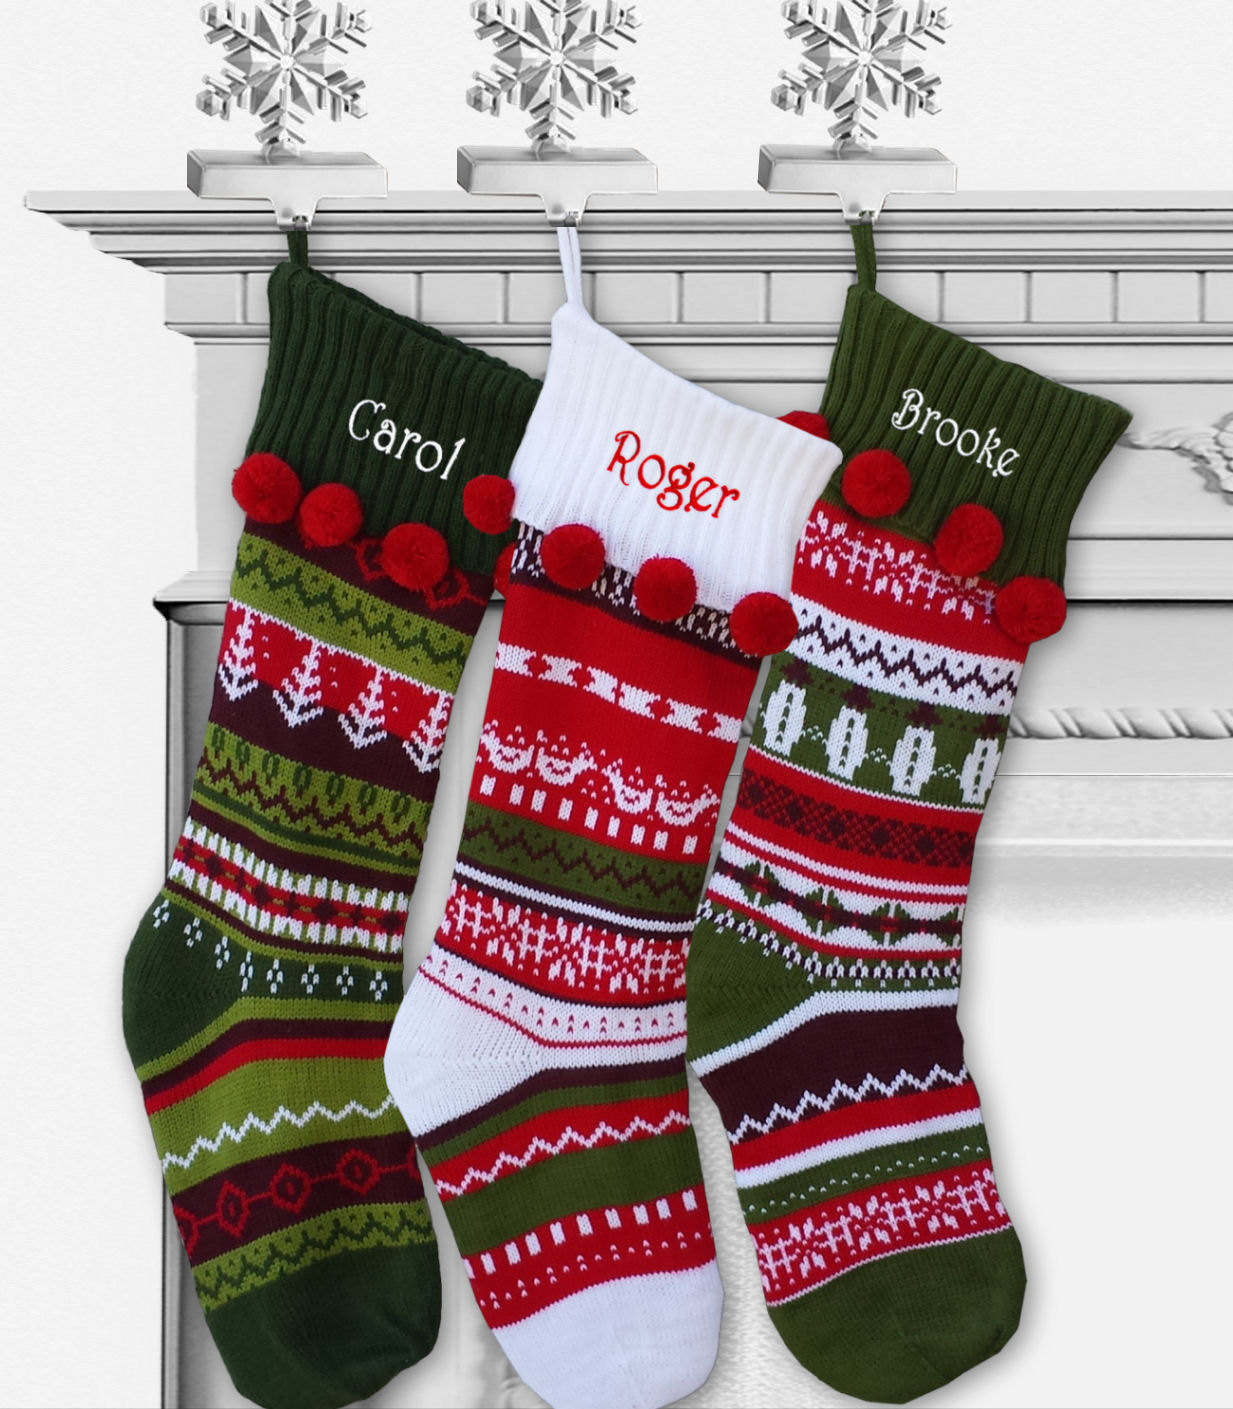 Knit christmas stockings in the authentic red, green and white color ...